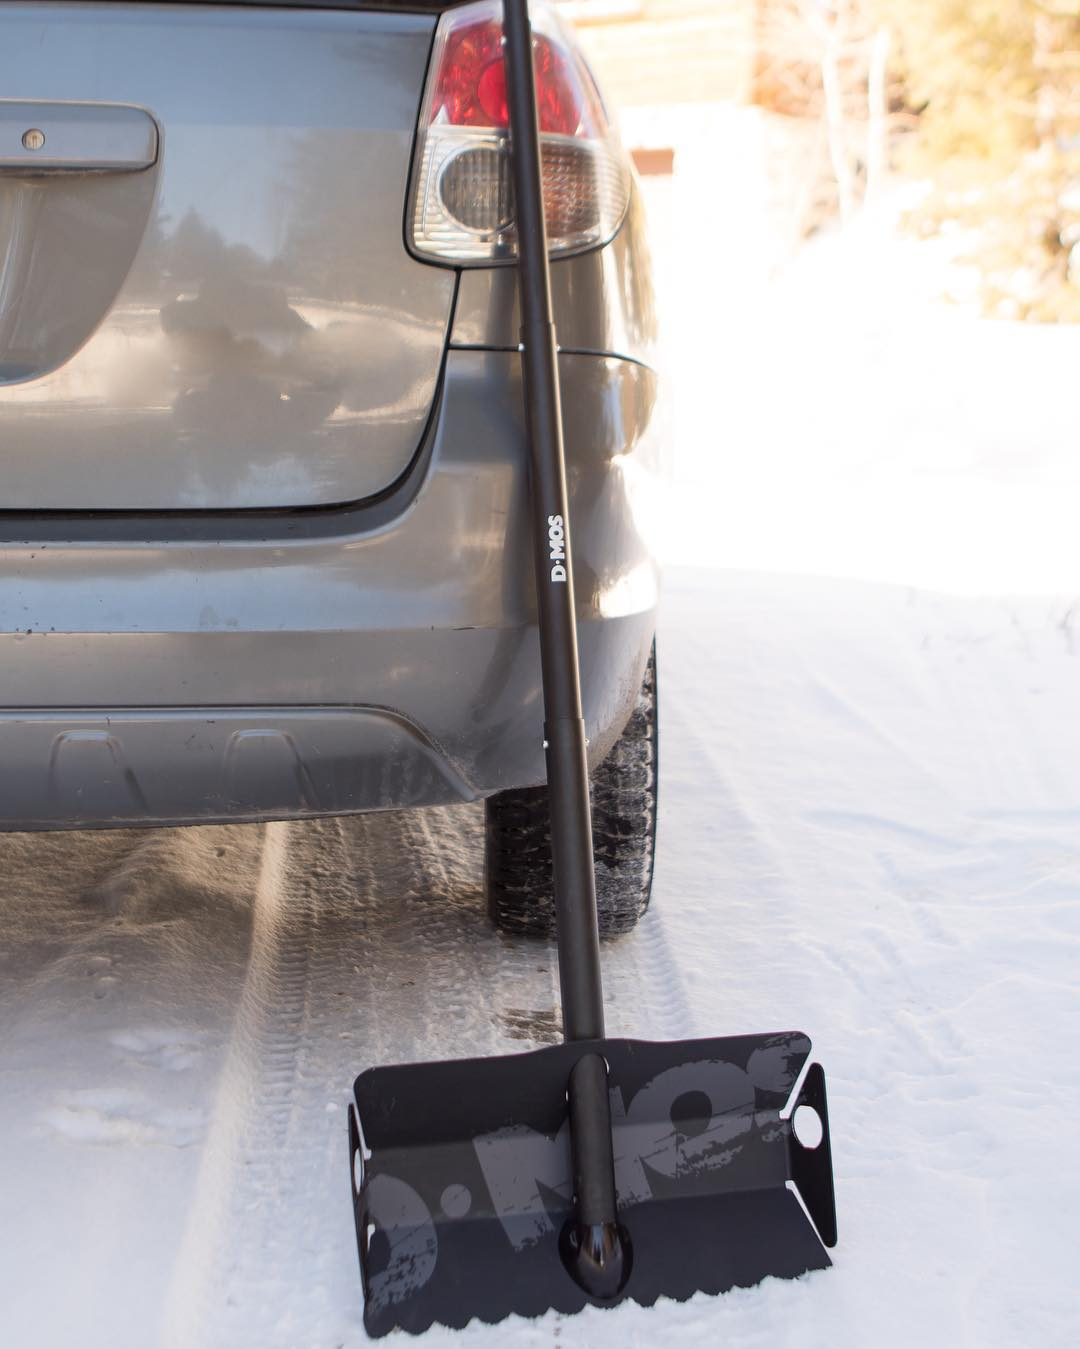 Some of our friends are keeping their shovel in the car year round. How will you use yours this summer?